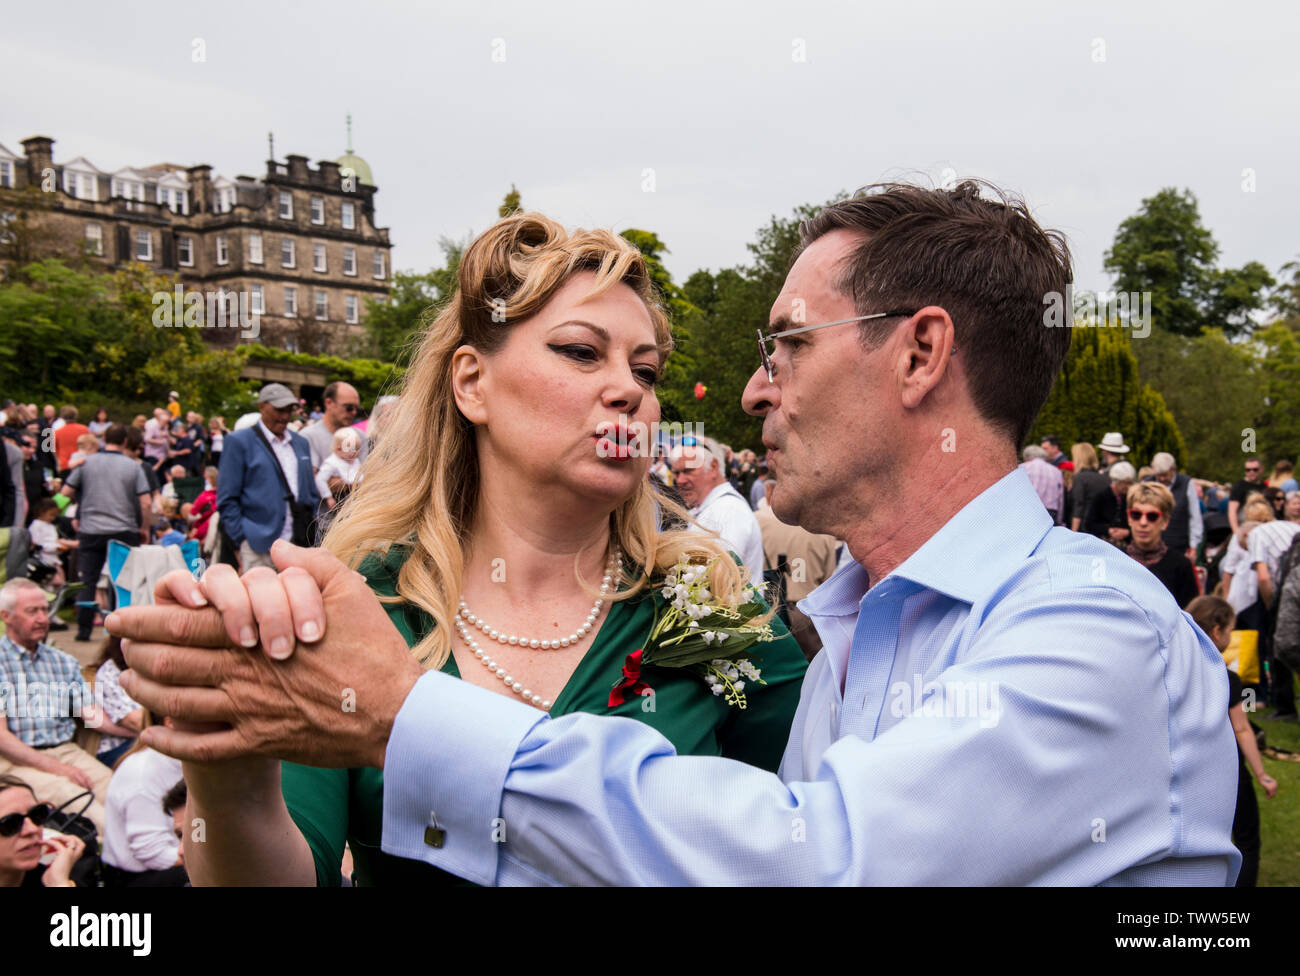 Couple dancing with woman pouting on 1940s Day, Harrogate, England, UK, 23rd June 2019. Stock Photo